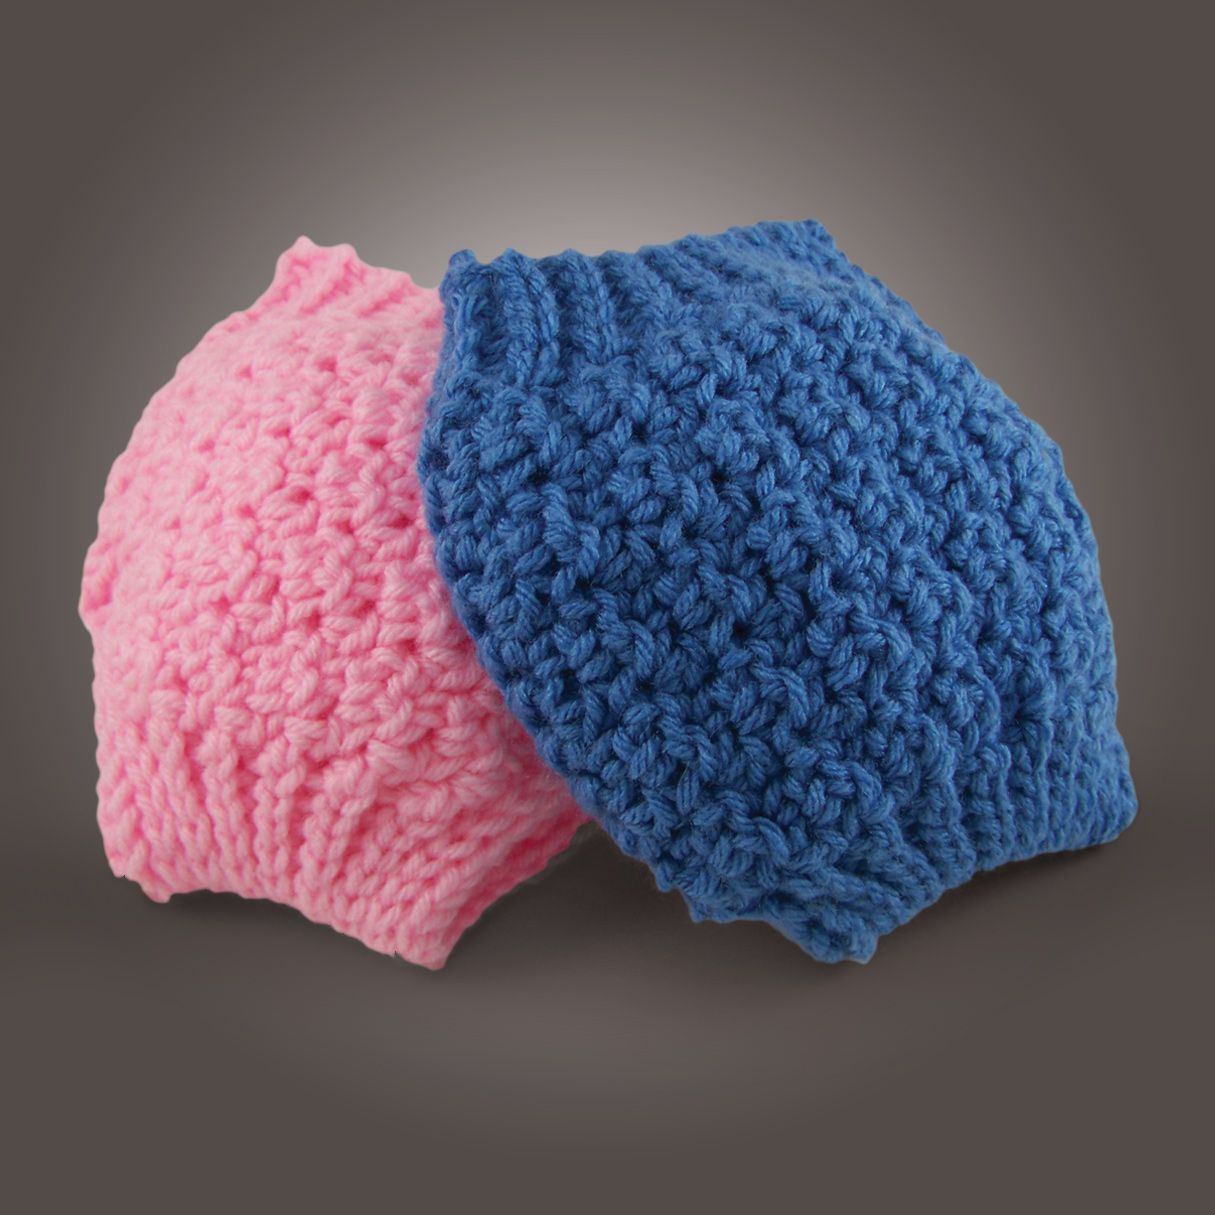 Free Diaper Cover Pattern Crafts Pinterest Diaper Cover